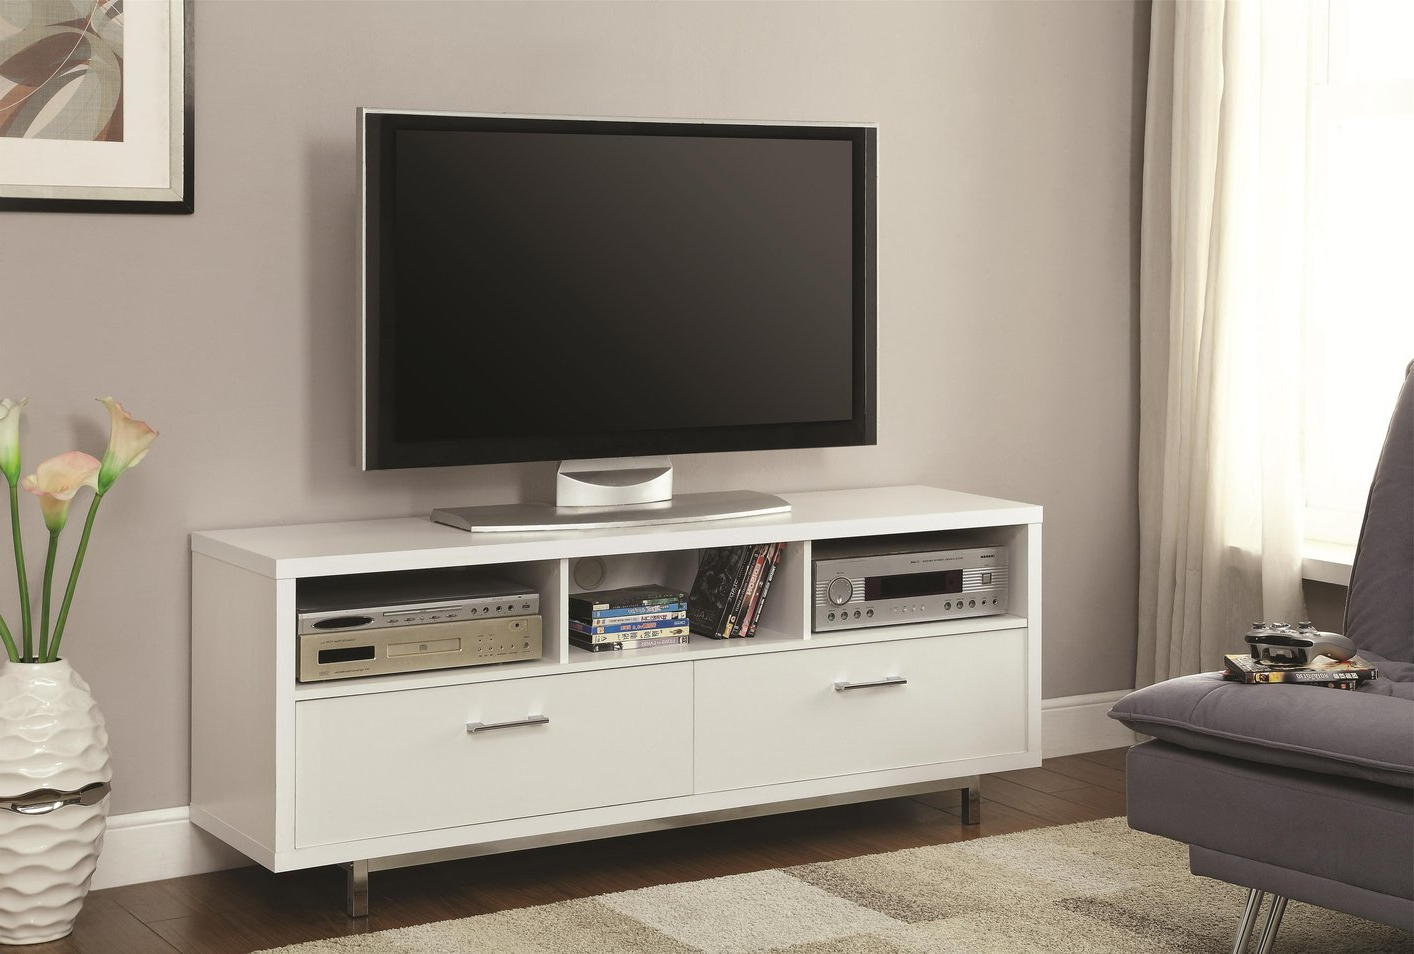 Widely Used White Wood Tv Stands With White Wood Tv Stand – Steal A Sofa Furniture Outlet Los Angeles Ca (View 20 of 20)